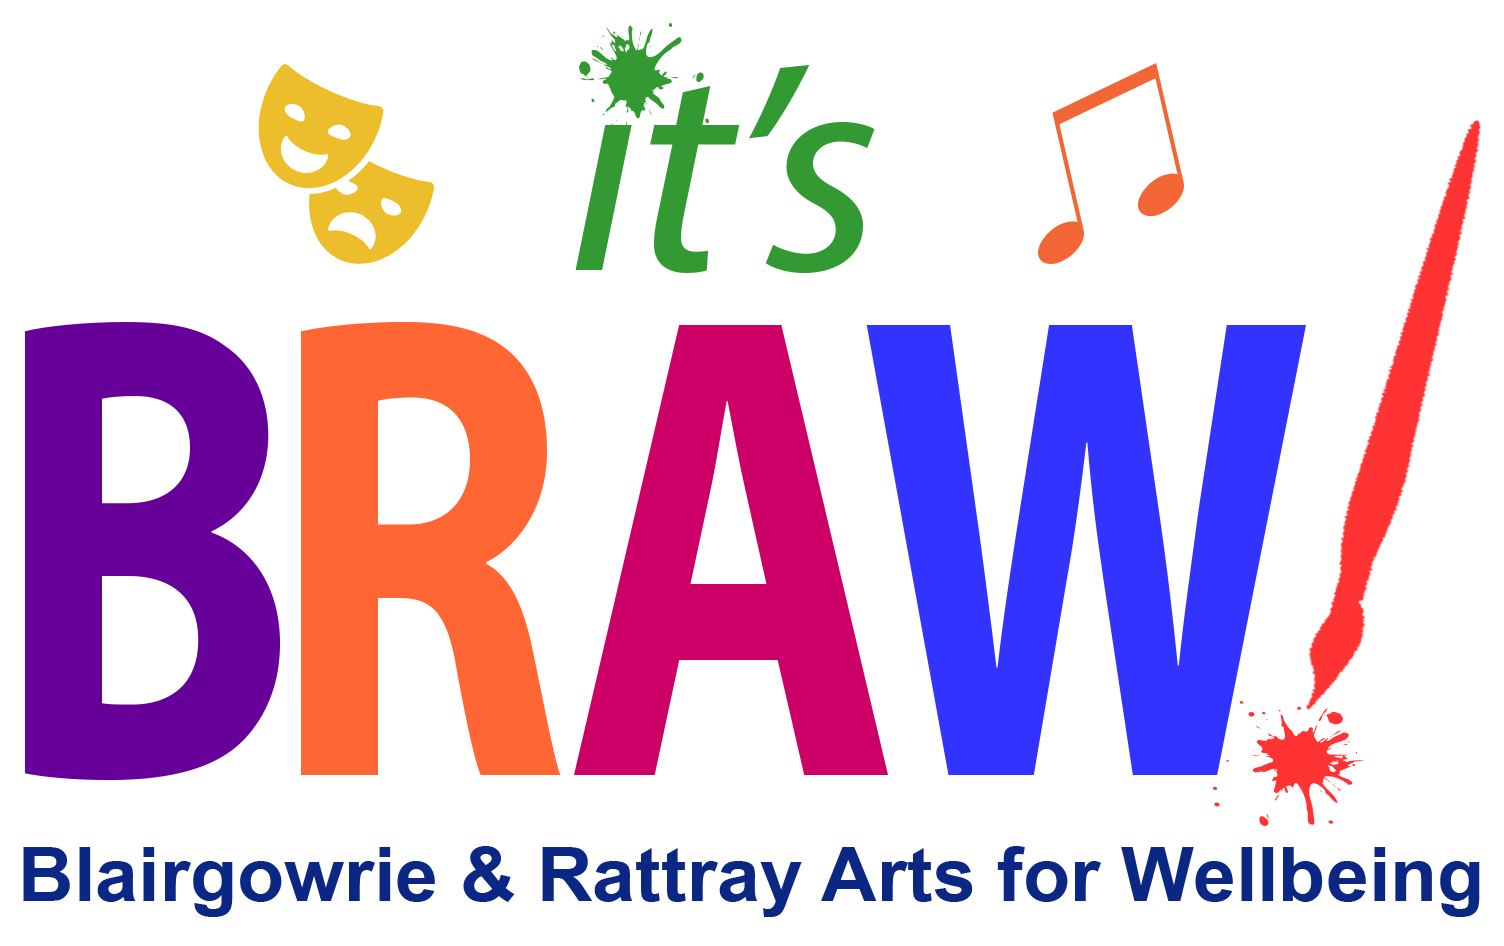 Logo for Blairgowrie & Rattray Arts for Wellbeing festival